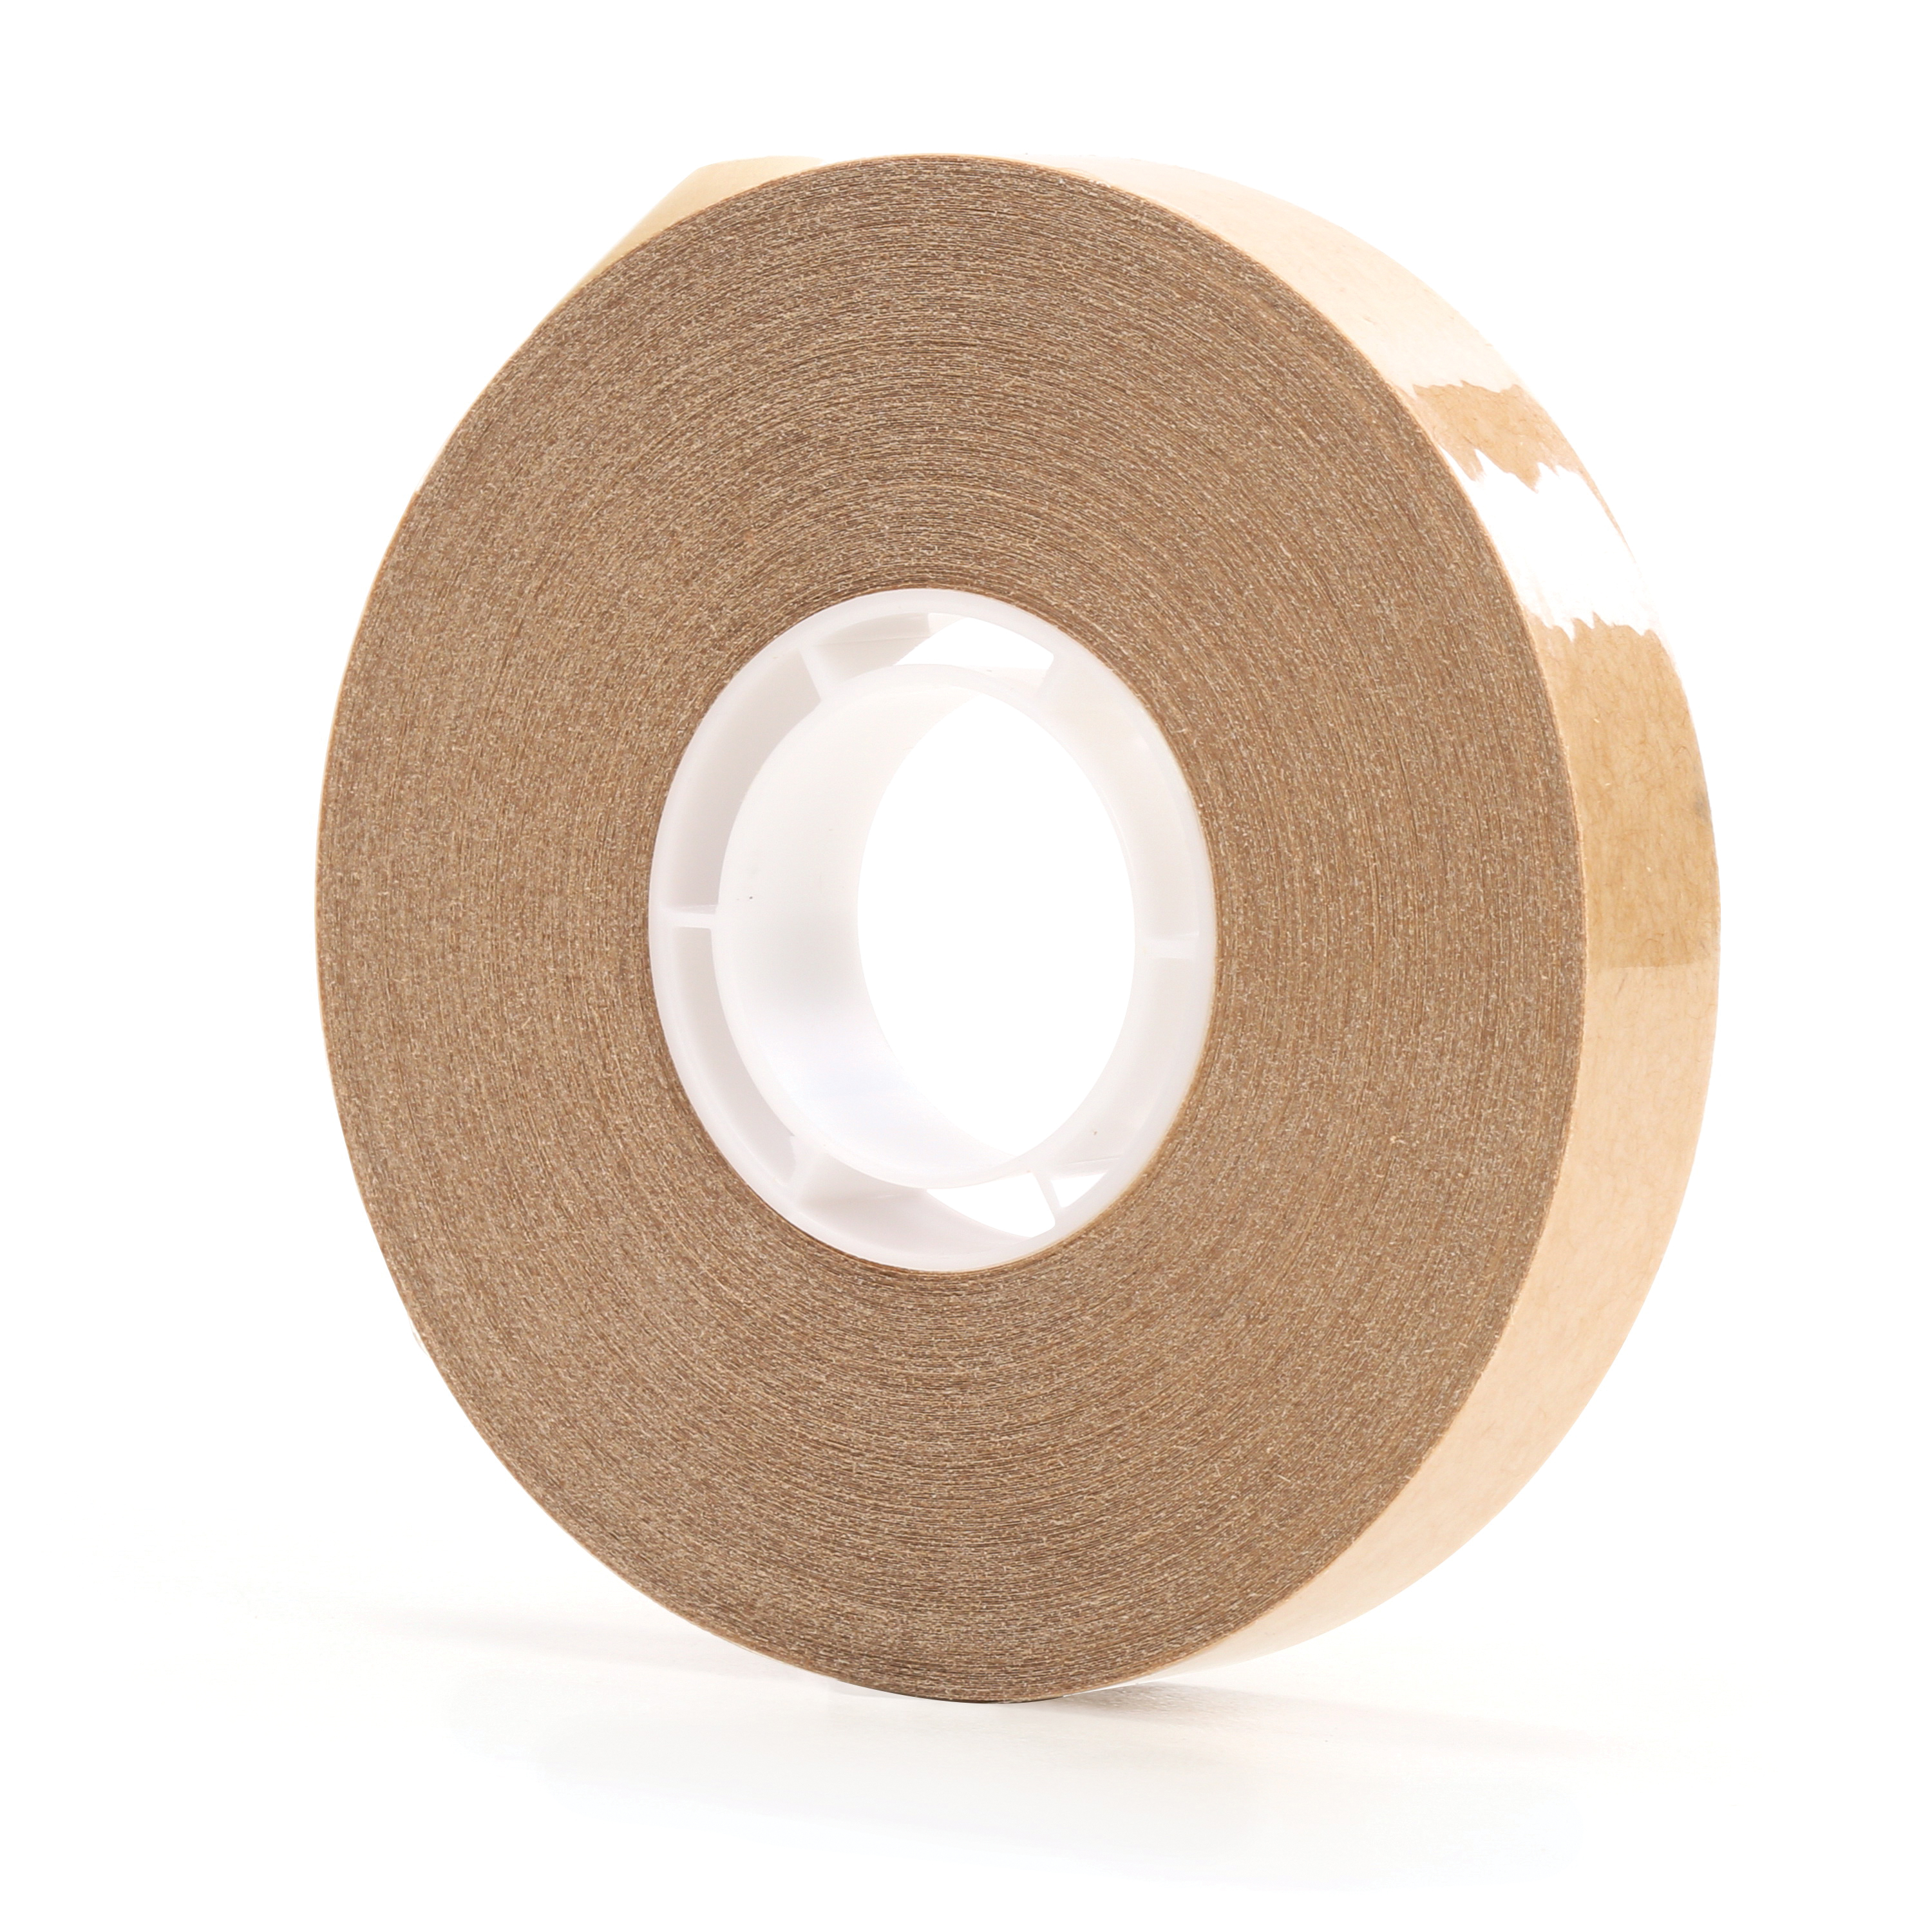 3M™ 021200-83857 Utility-Grade Adhesive Transfer Tape, 36 yd L x 1/2 in W, 2 mil THK, 1.7 mil 400 Acrylic Adhesive, Clear